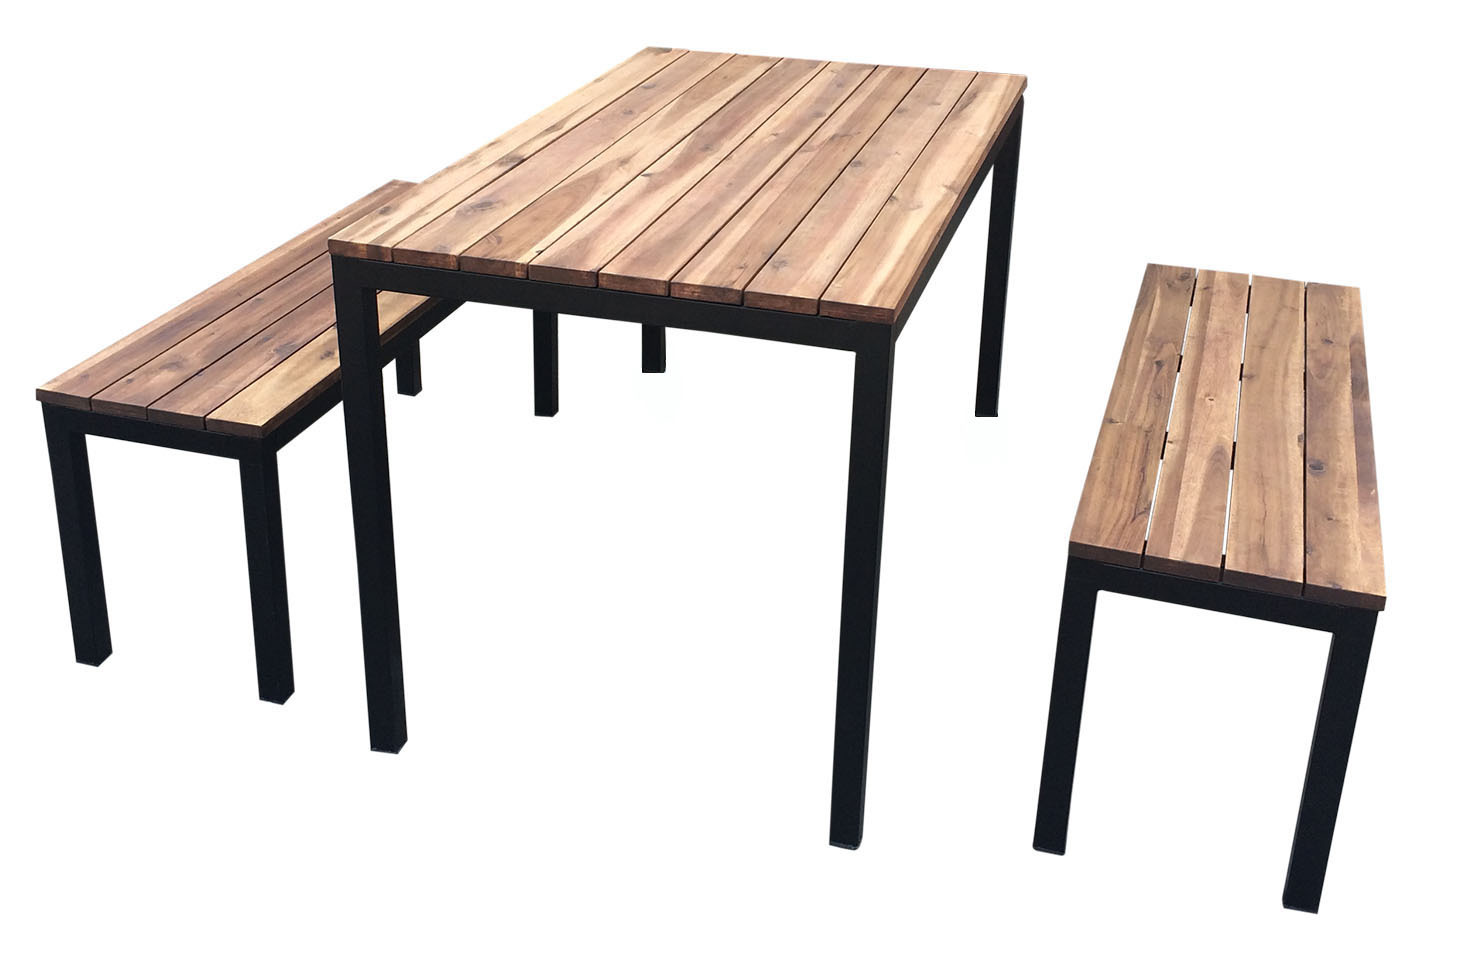 Dining Table And Bench Seats Galvanised Powder Coated Black 1800mm Wide Setting Beer Garden Outdoor